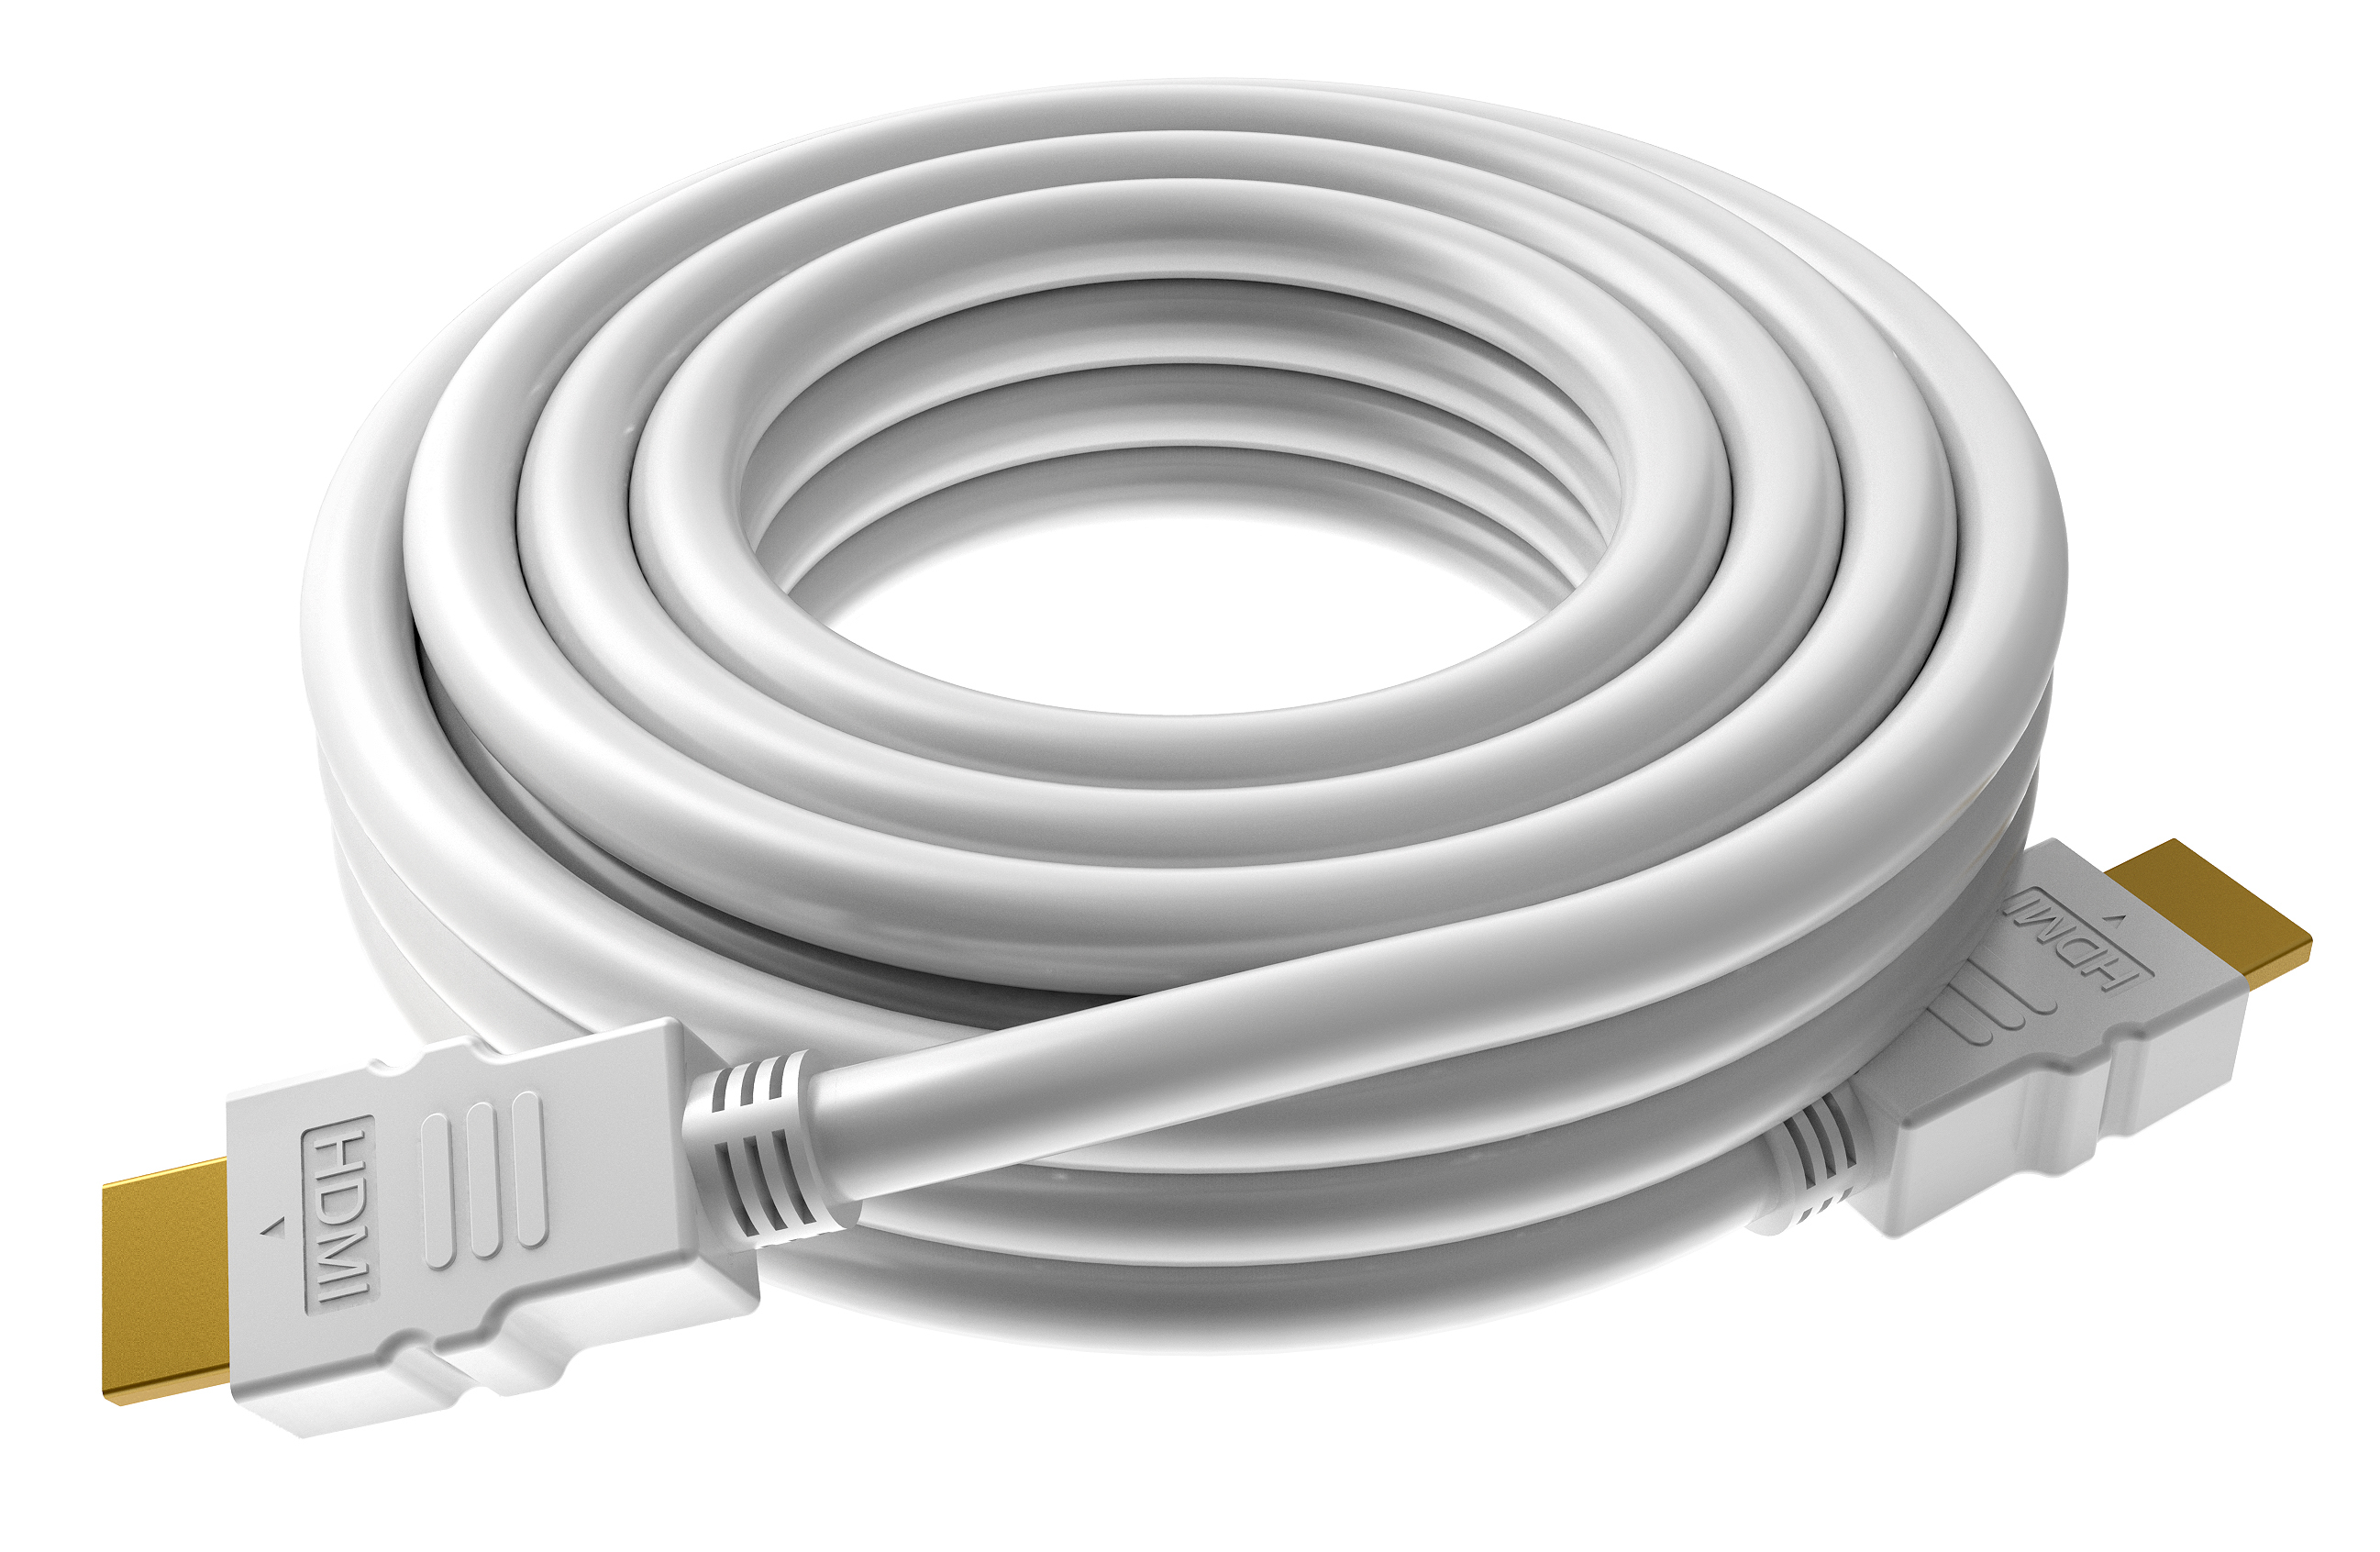 Vision TECHCONNECT SPARE 5M HDMI CABLE Engineered connectivity solution, White, 4K compliant, High-S